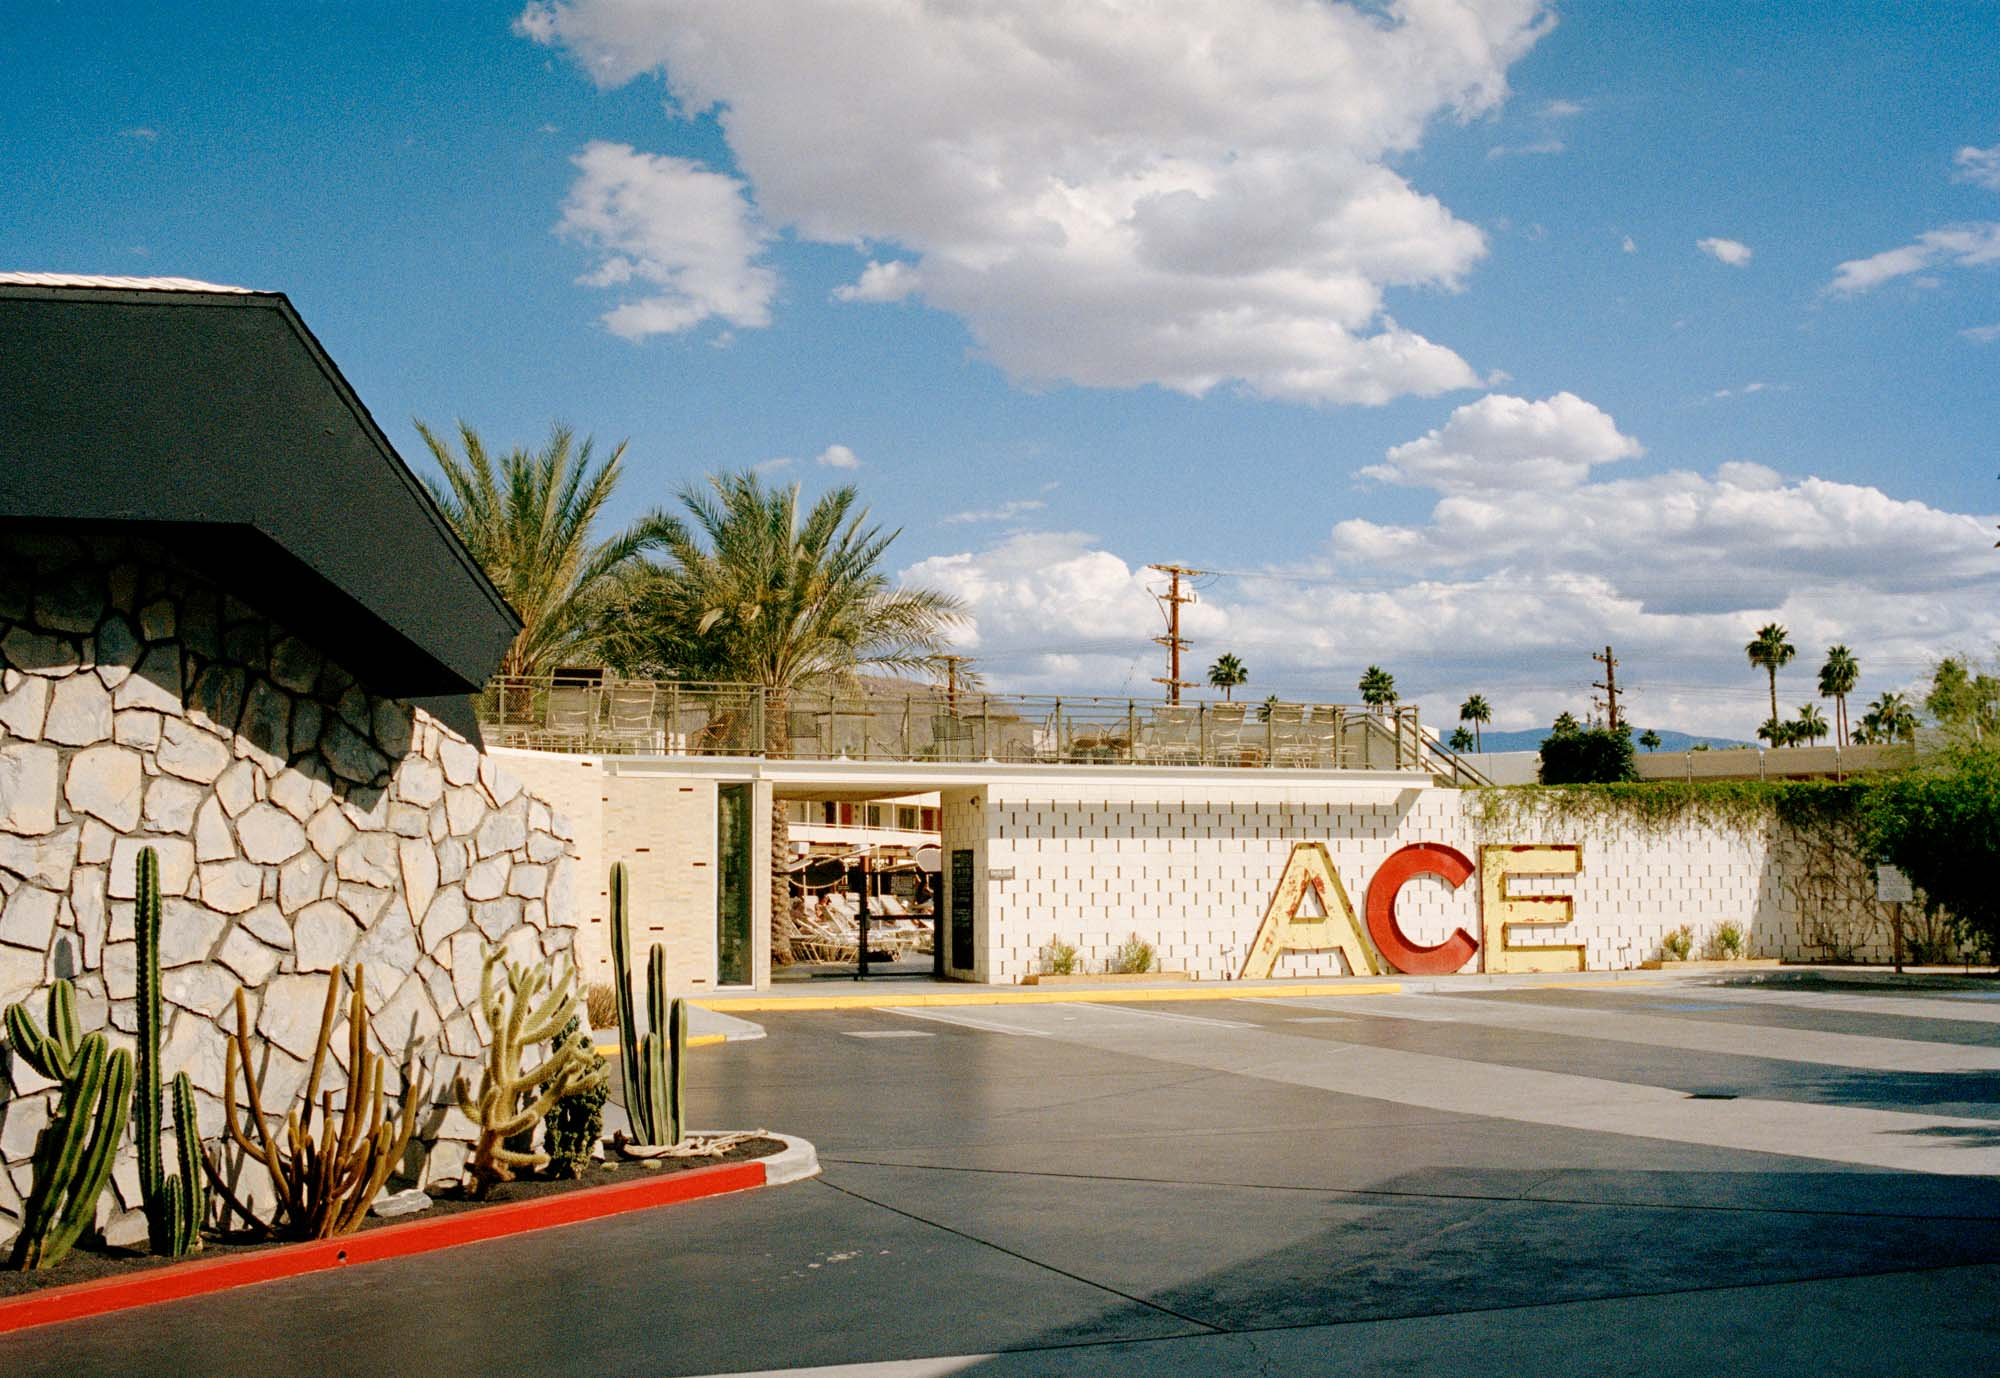 A photograph of the outside of the Ace Hotel in Palm Springs California. There is a large mid century sign that says ACE Blue skies & clouds with palm trees in the background. USA, Artwork, Prints, wall art, California, Photographic prints, Palm Springs,